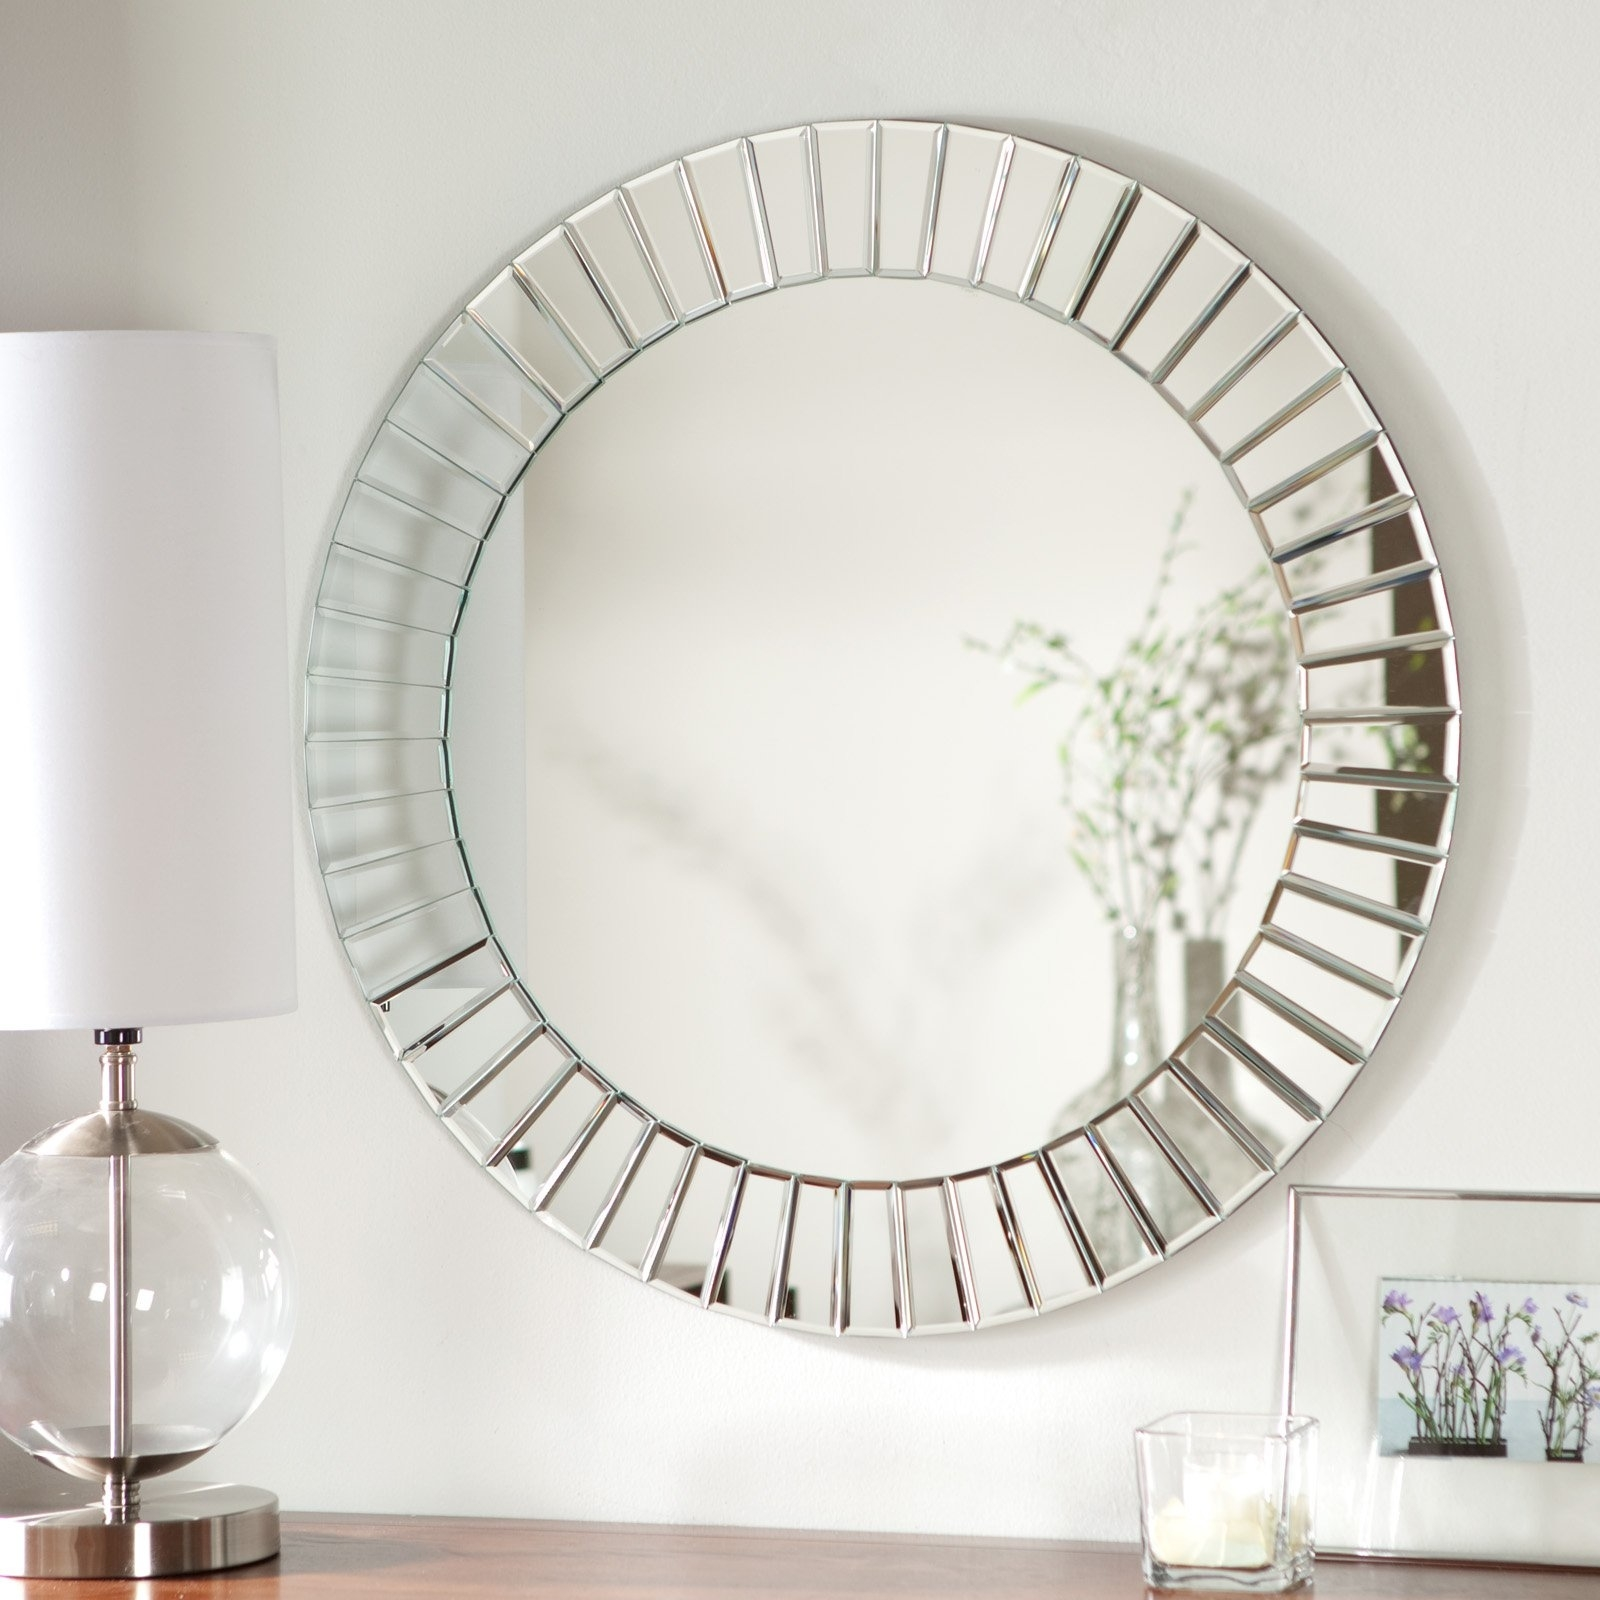 Small Decorative Mirrors For Bathrooms Creative Bathroom Decoration With Small Decorative Mirror (View 5 of 15)